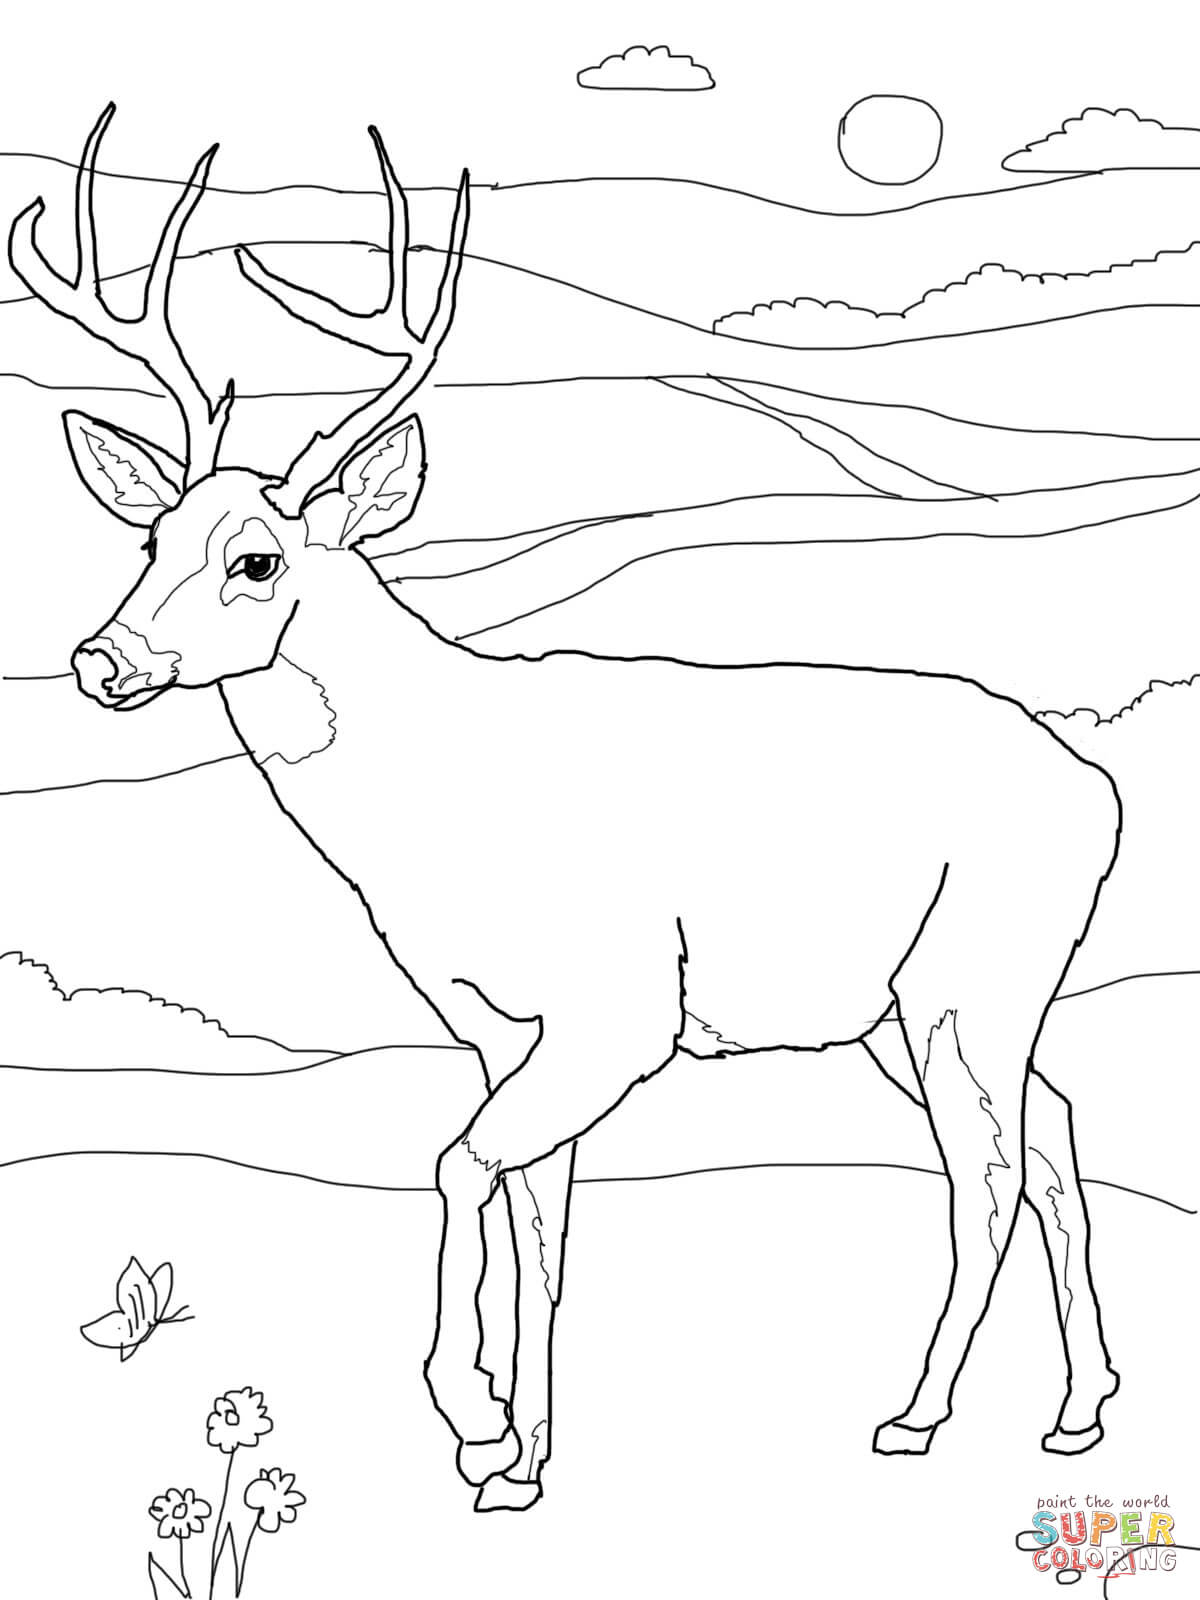 Deer Coloring Pages White Tailed Deers Coloring Pages Free Coloring Pages